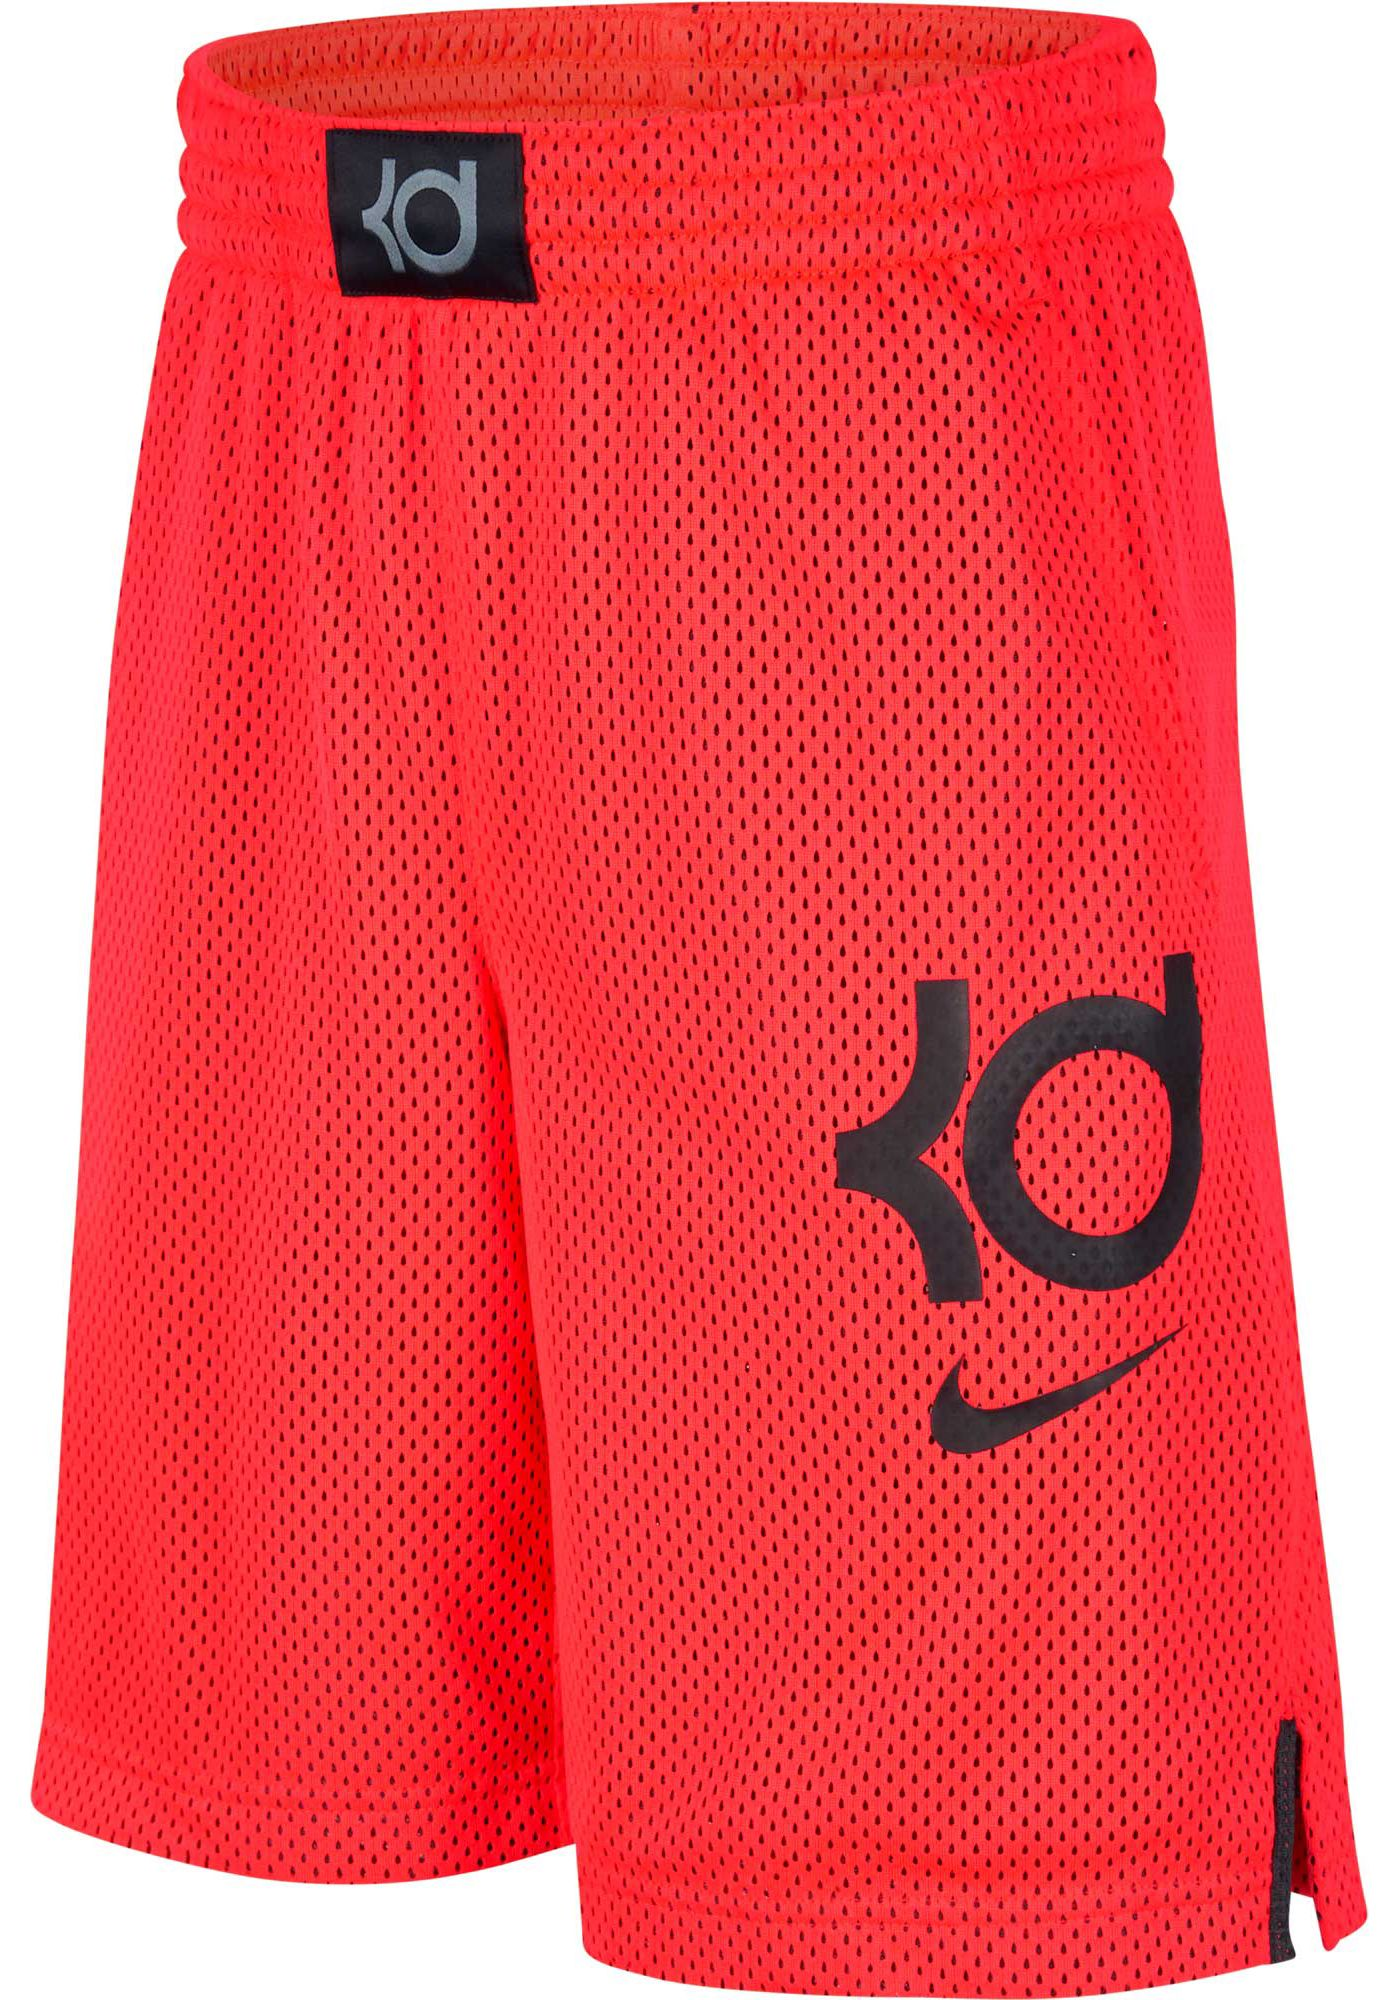 Nike Boys' Dry KD Graphic Basketball Shorts